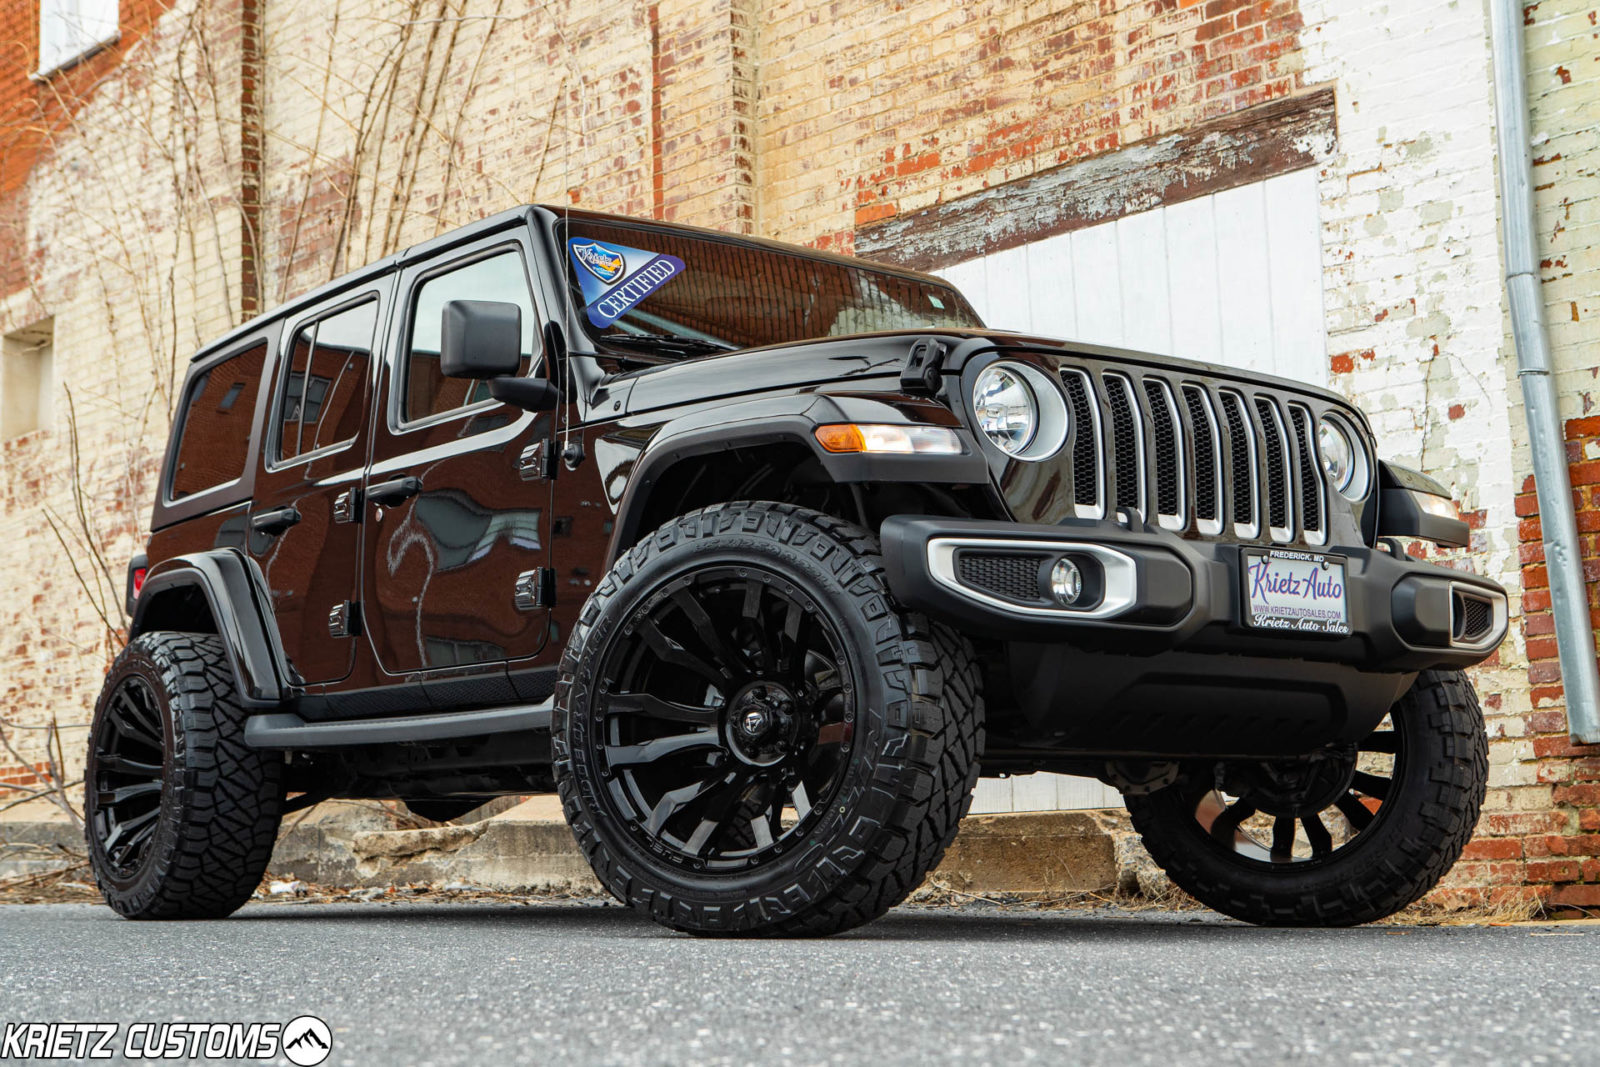 Lift Kits For Jeeps >> Lifted Jeep Wrangler with 22×12 Fuel Blitz and a 6 Inch Rough Country Lift Kit